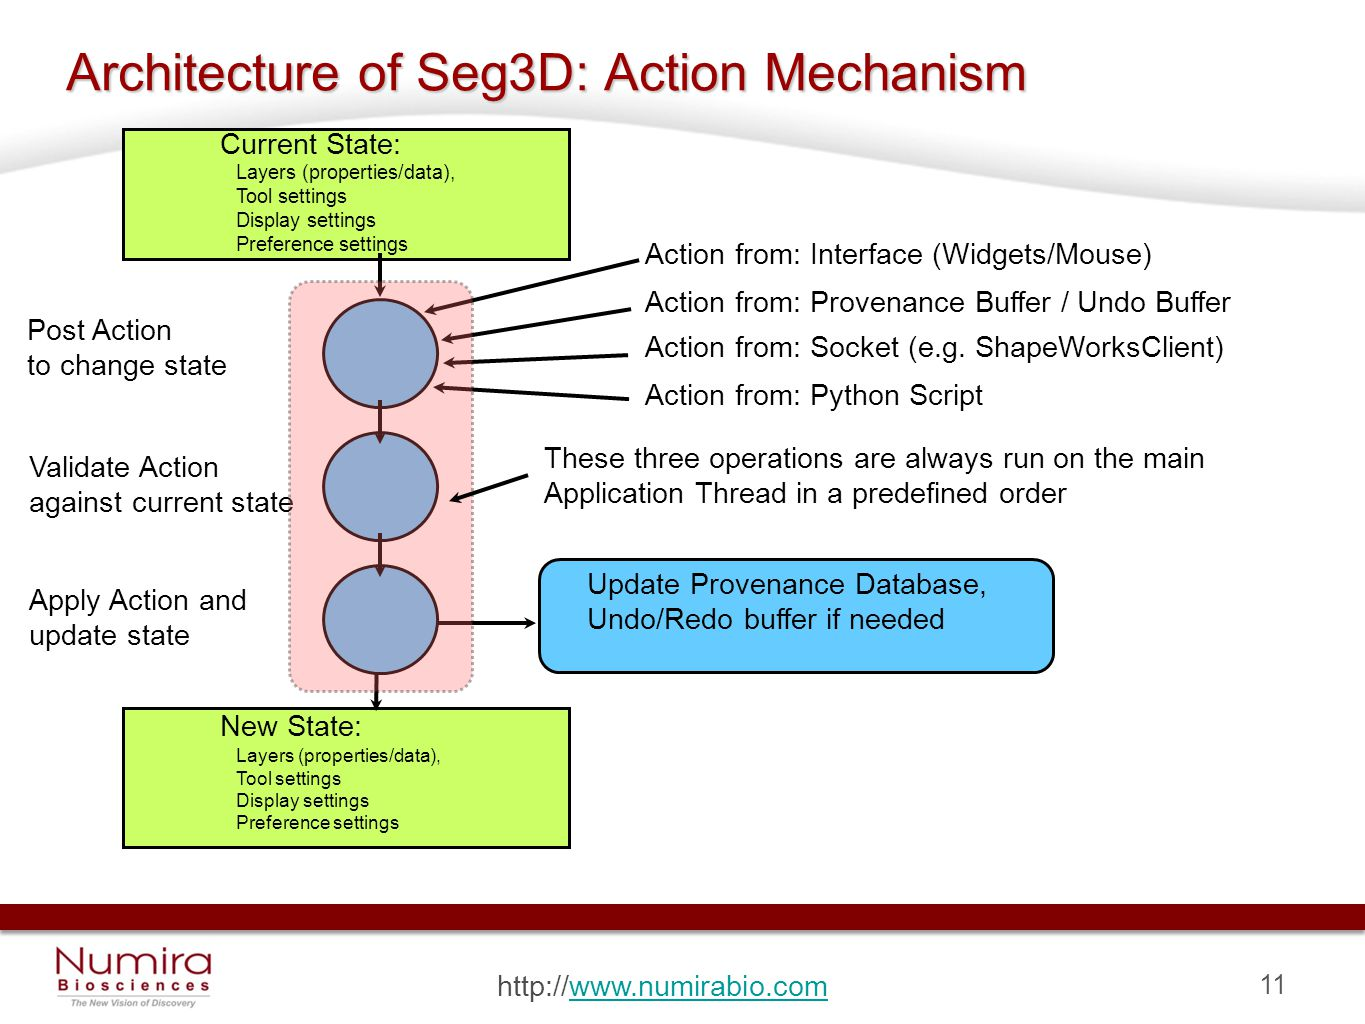 11 http://www.numirabio.comwww.numirabio.com Architecture of Seg3D: Action Mechanism Current State: Layers (properties/data), Tool settings Display settings Preference settings Action from: Interface (Widgets/Mouse) Action from: Provenance Buffer / Undo Buffer Action from: Socket (e.g.